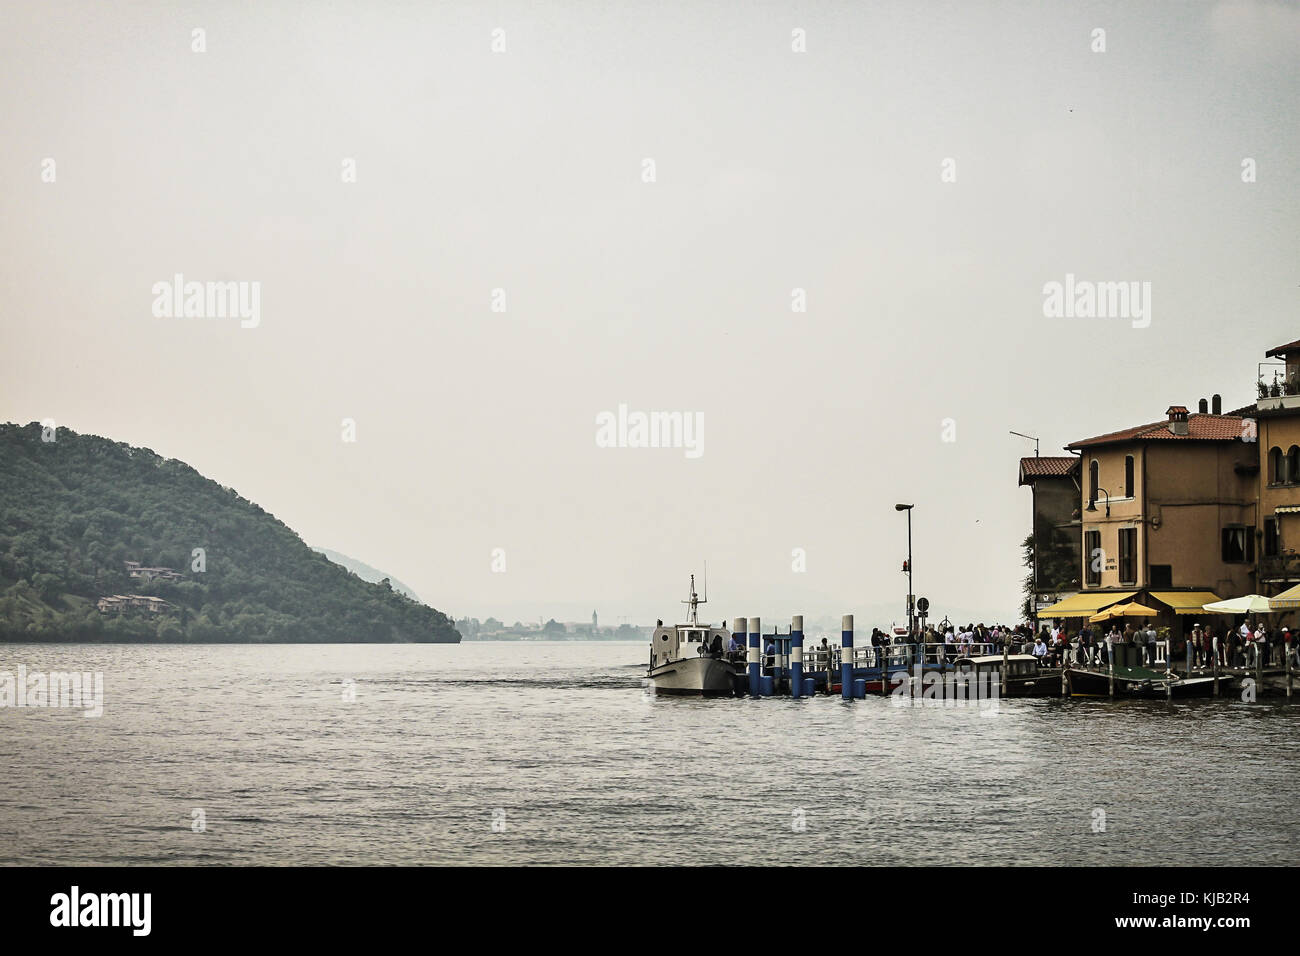 The Iseo lake in Italy - Stock Image